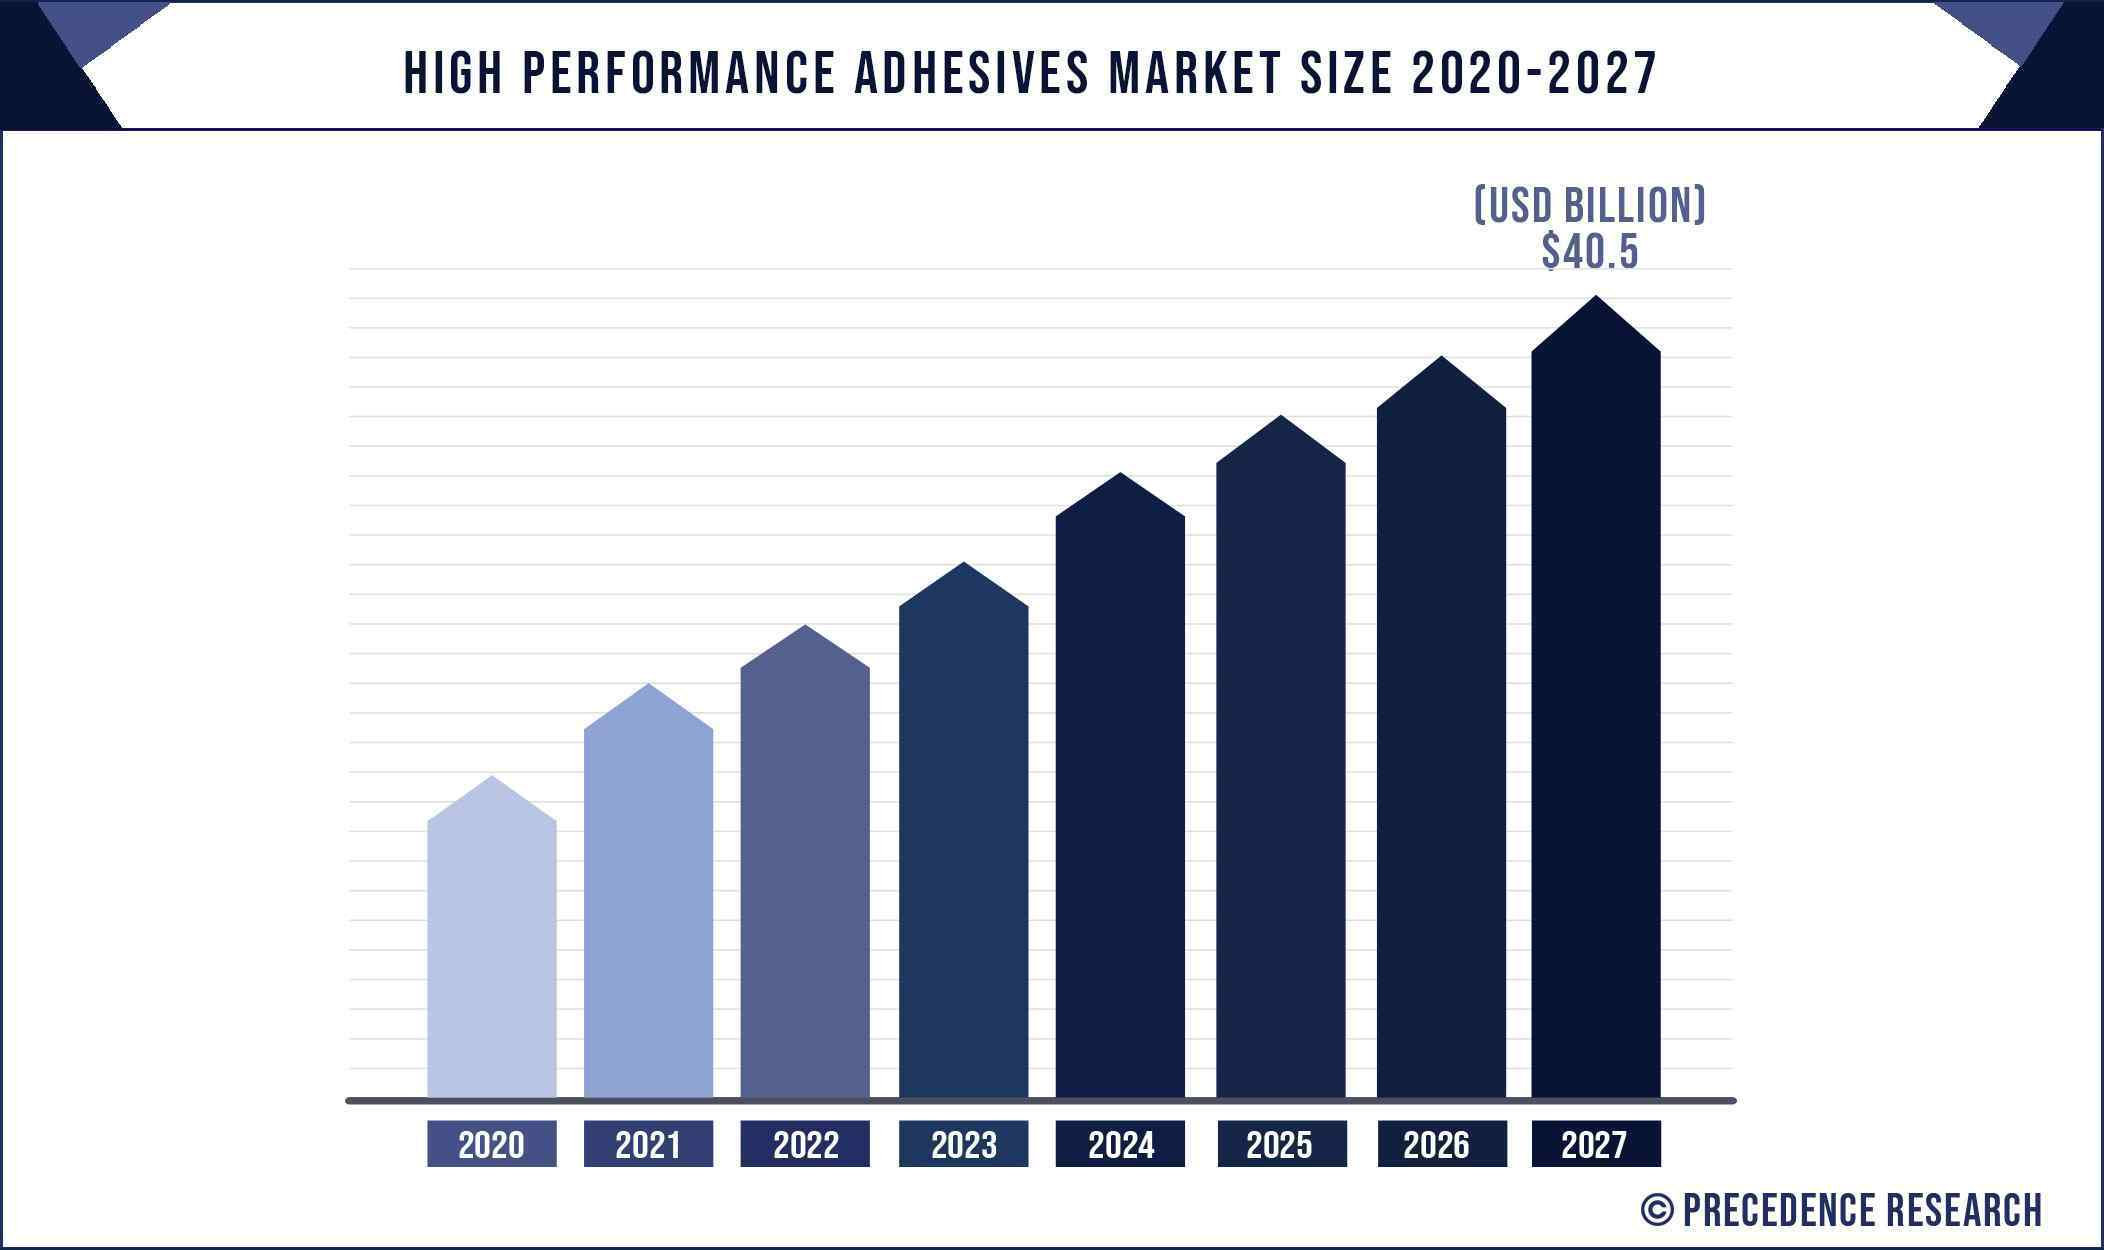 High Performance Adhesives Market Size 2020 to 2027